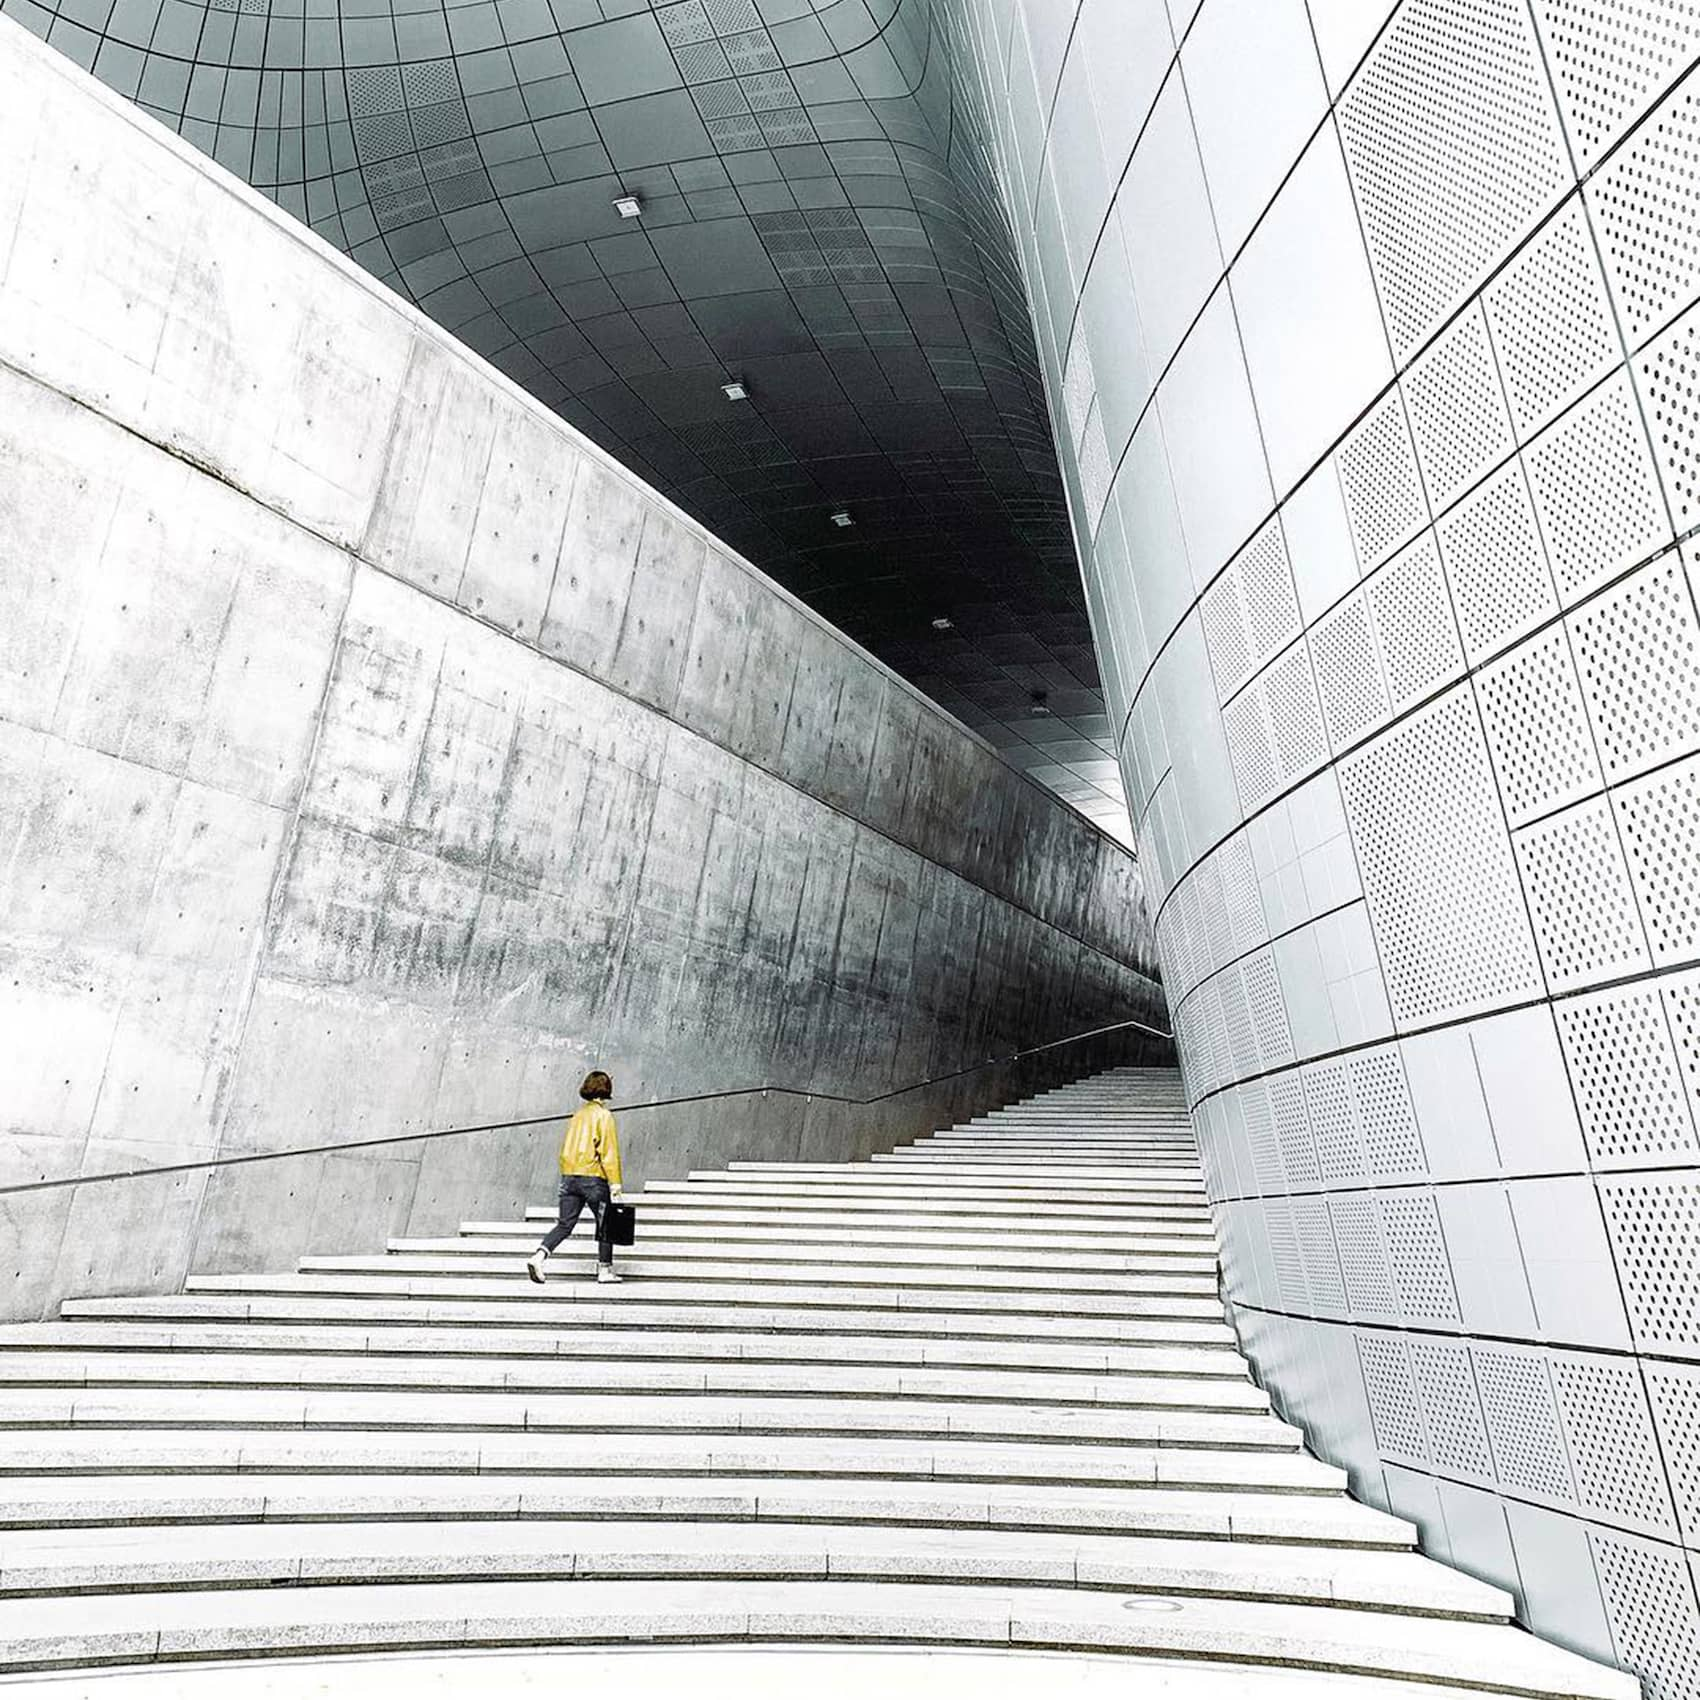 Interior Architecture Photography - Abstract Building Photo